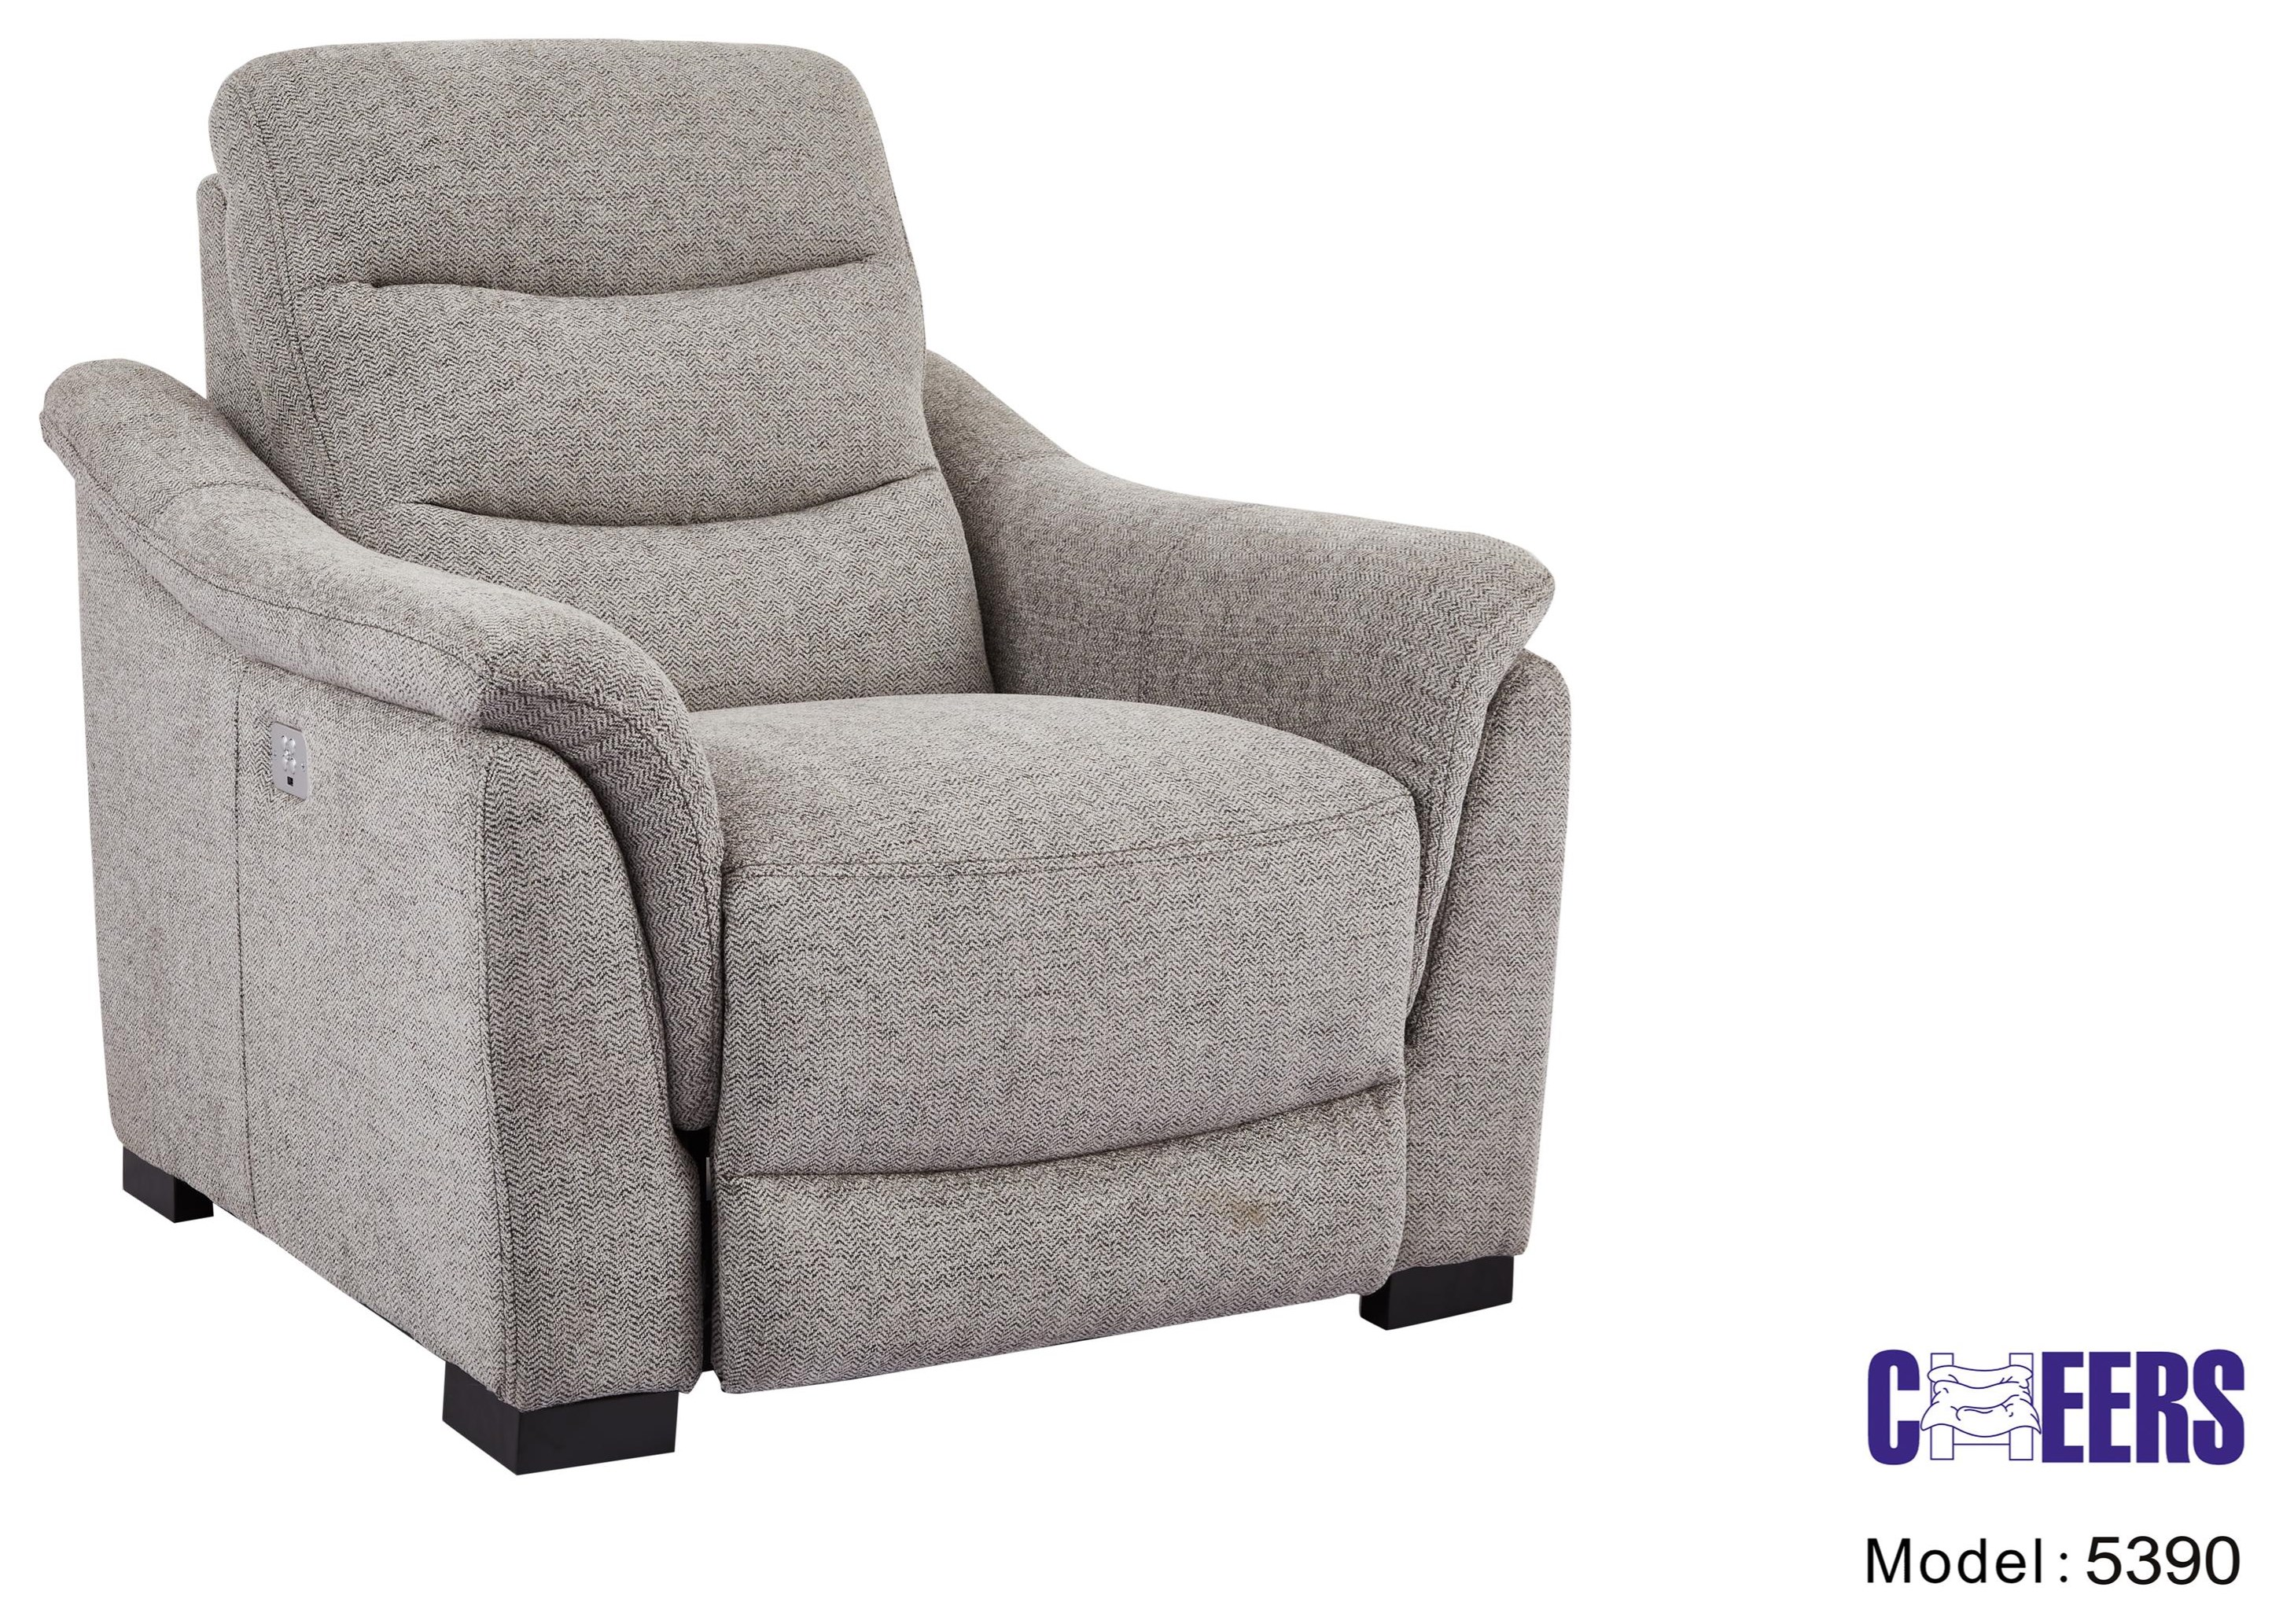 5390 Power Head Recliner by Cheers at Westrich Furniture & Appliances